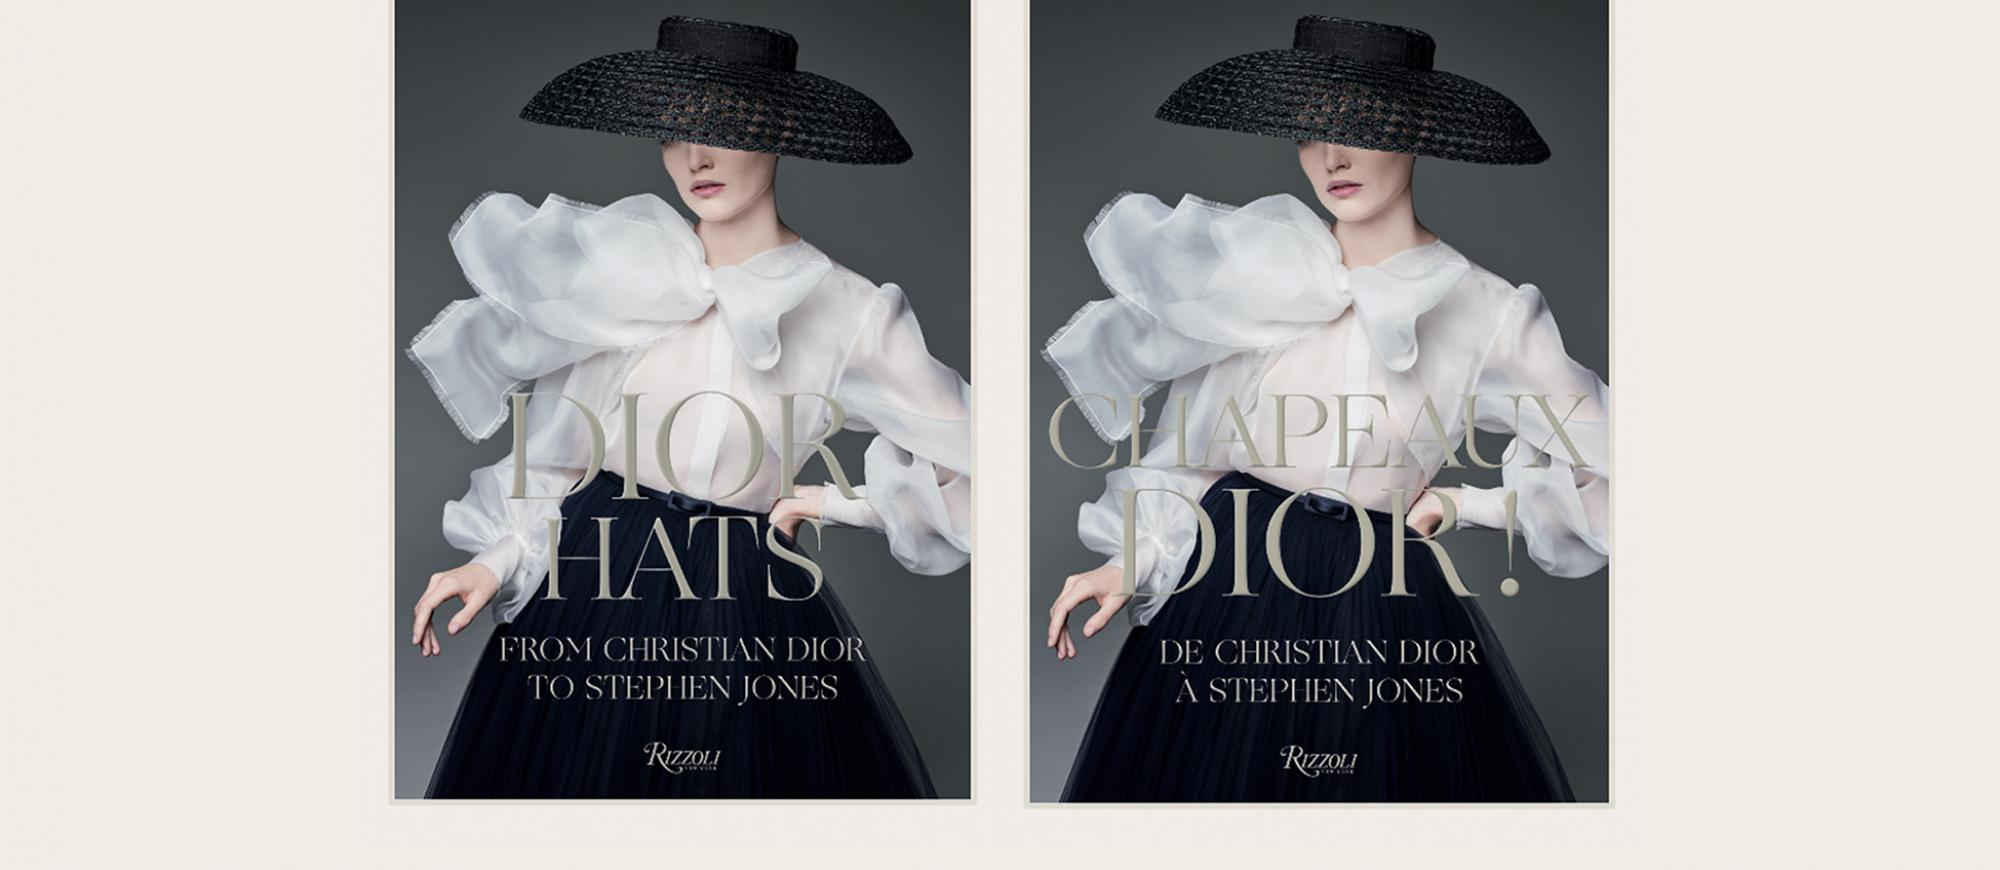 Dior Hats: From Christian Dior to Stephen Jones